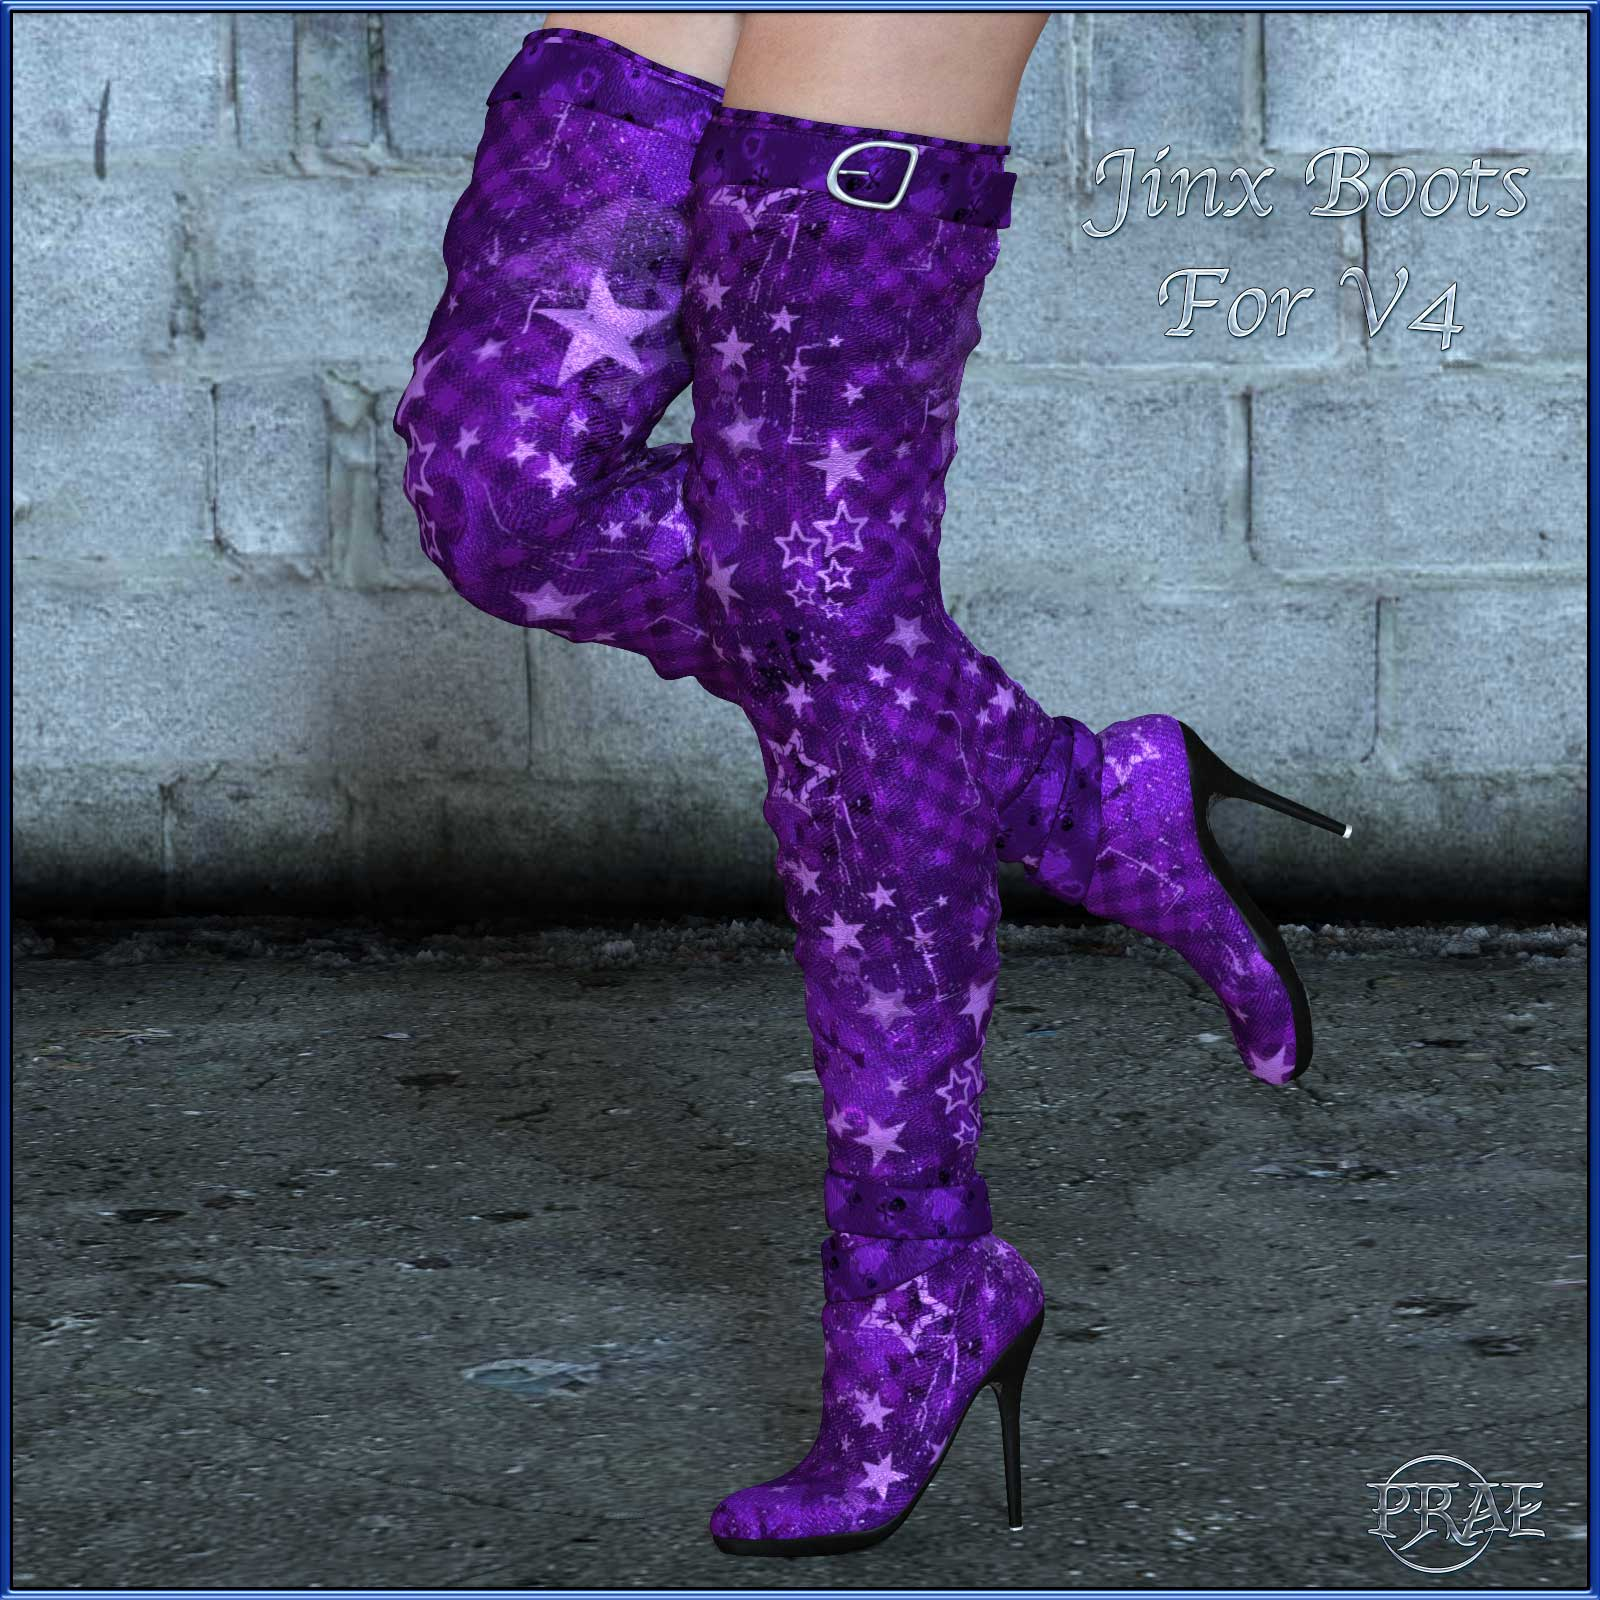 Jinx Boots for V4 by prae